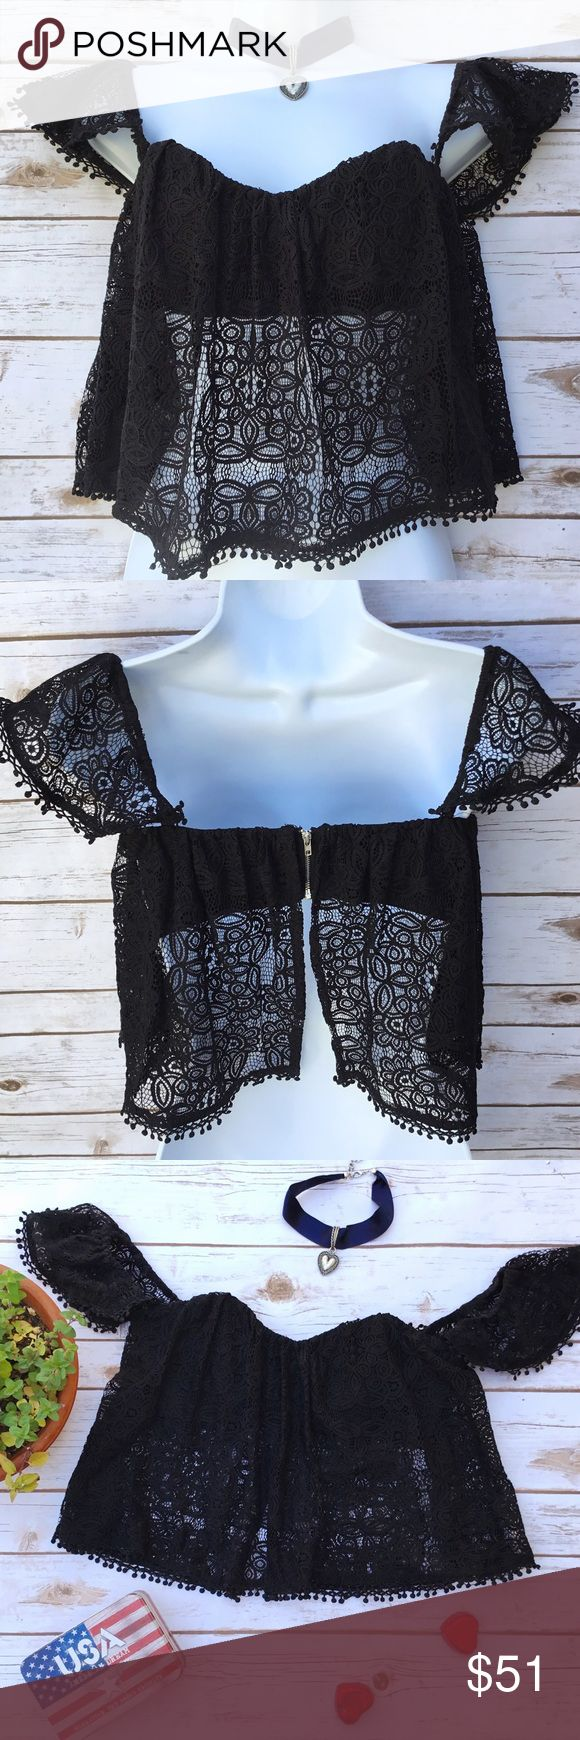 Black BOHO Festival Bandeau Top w/Lace Overlay Just add cut off shorts and you are good to go! Super sexy top, can be worn on or off shoulder. The attached bandeau has boning in front and zips in back. Size S, measures about 14.5 inches across the bust and about 15 inches in length. 0270 Cotton Candy LA Tops